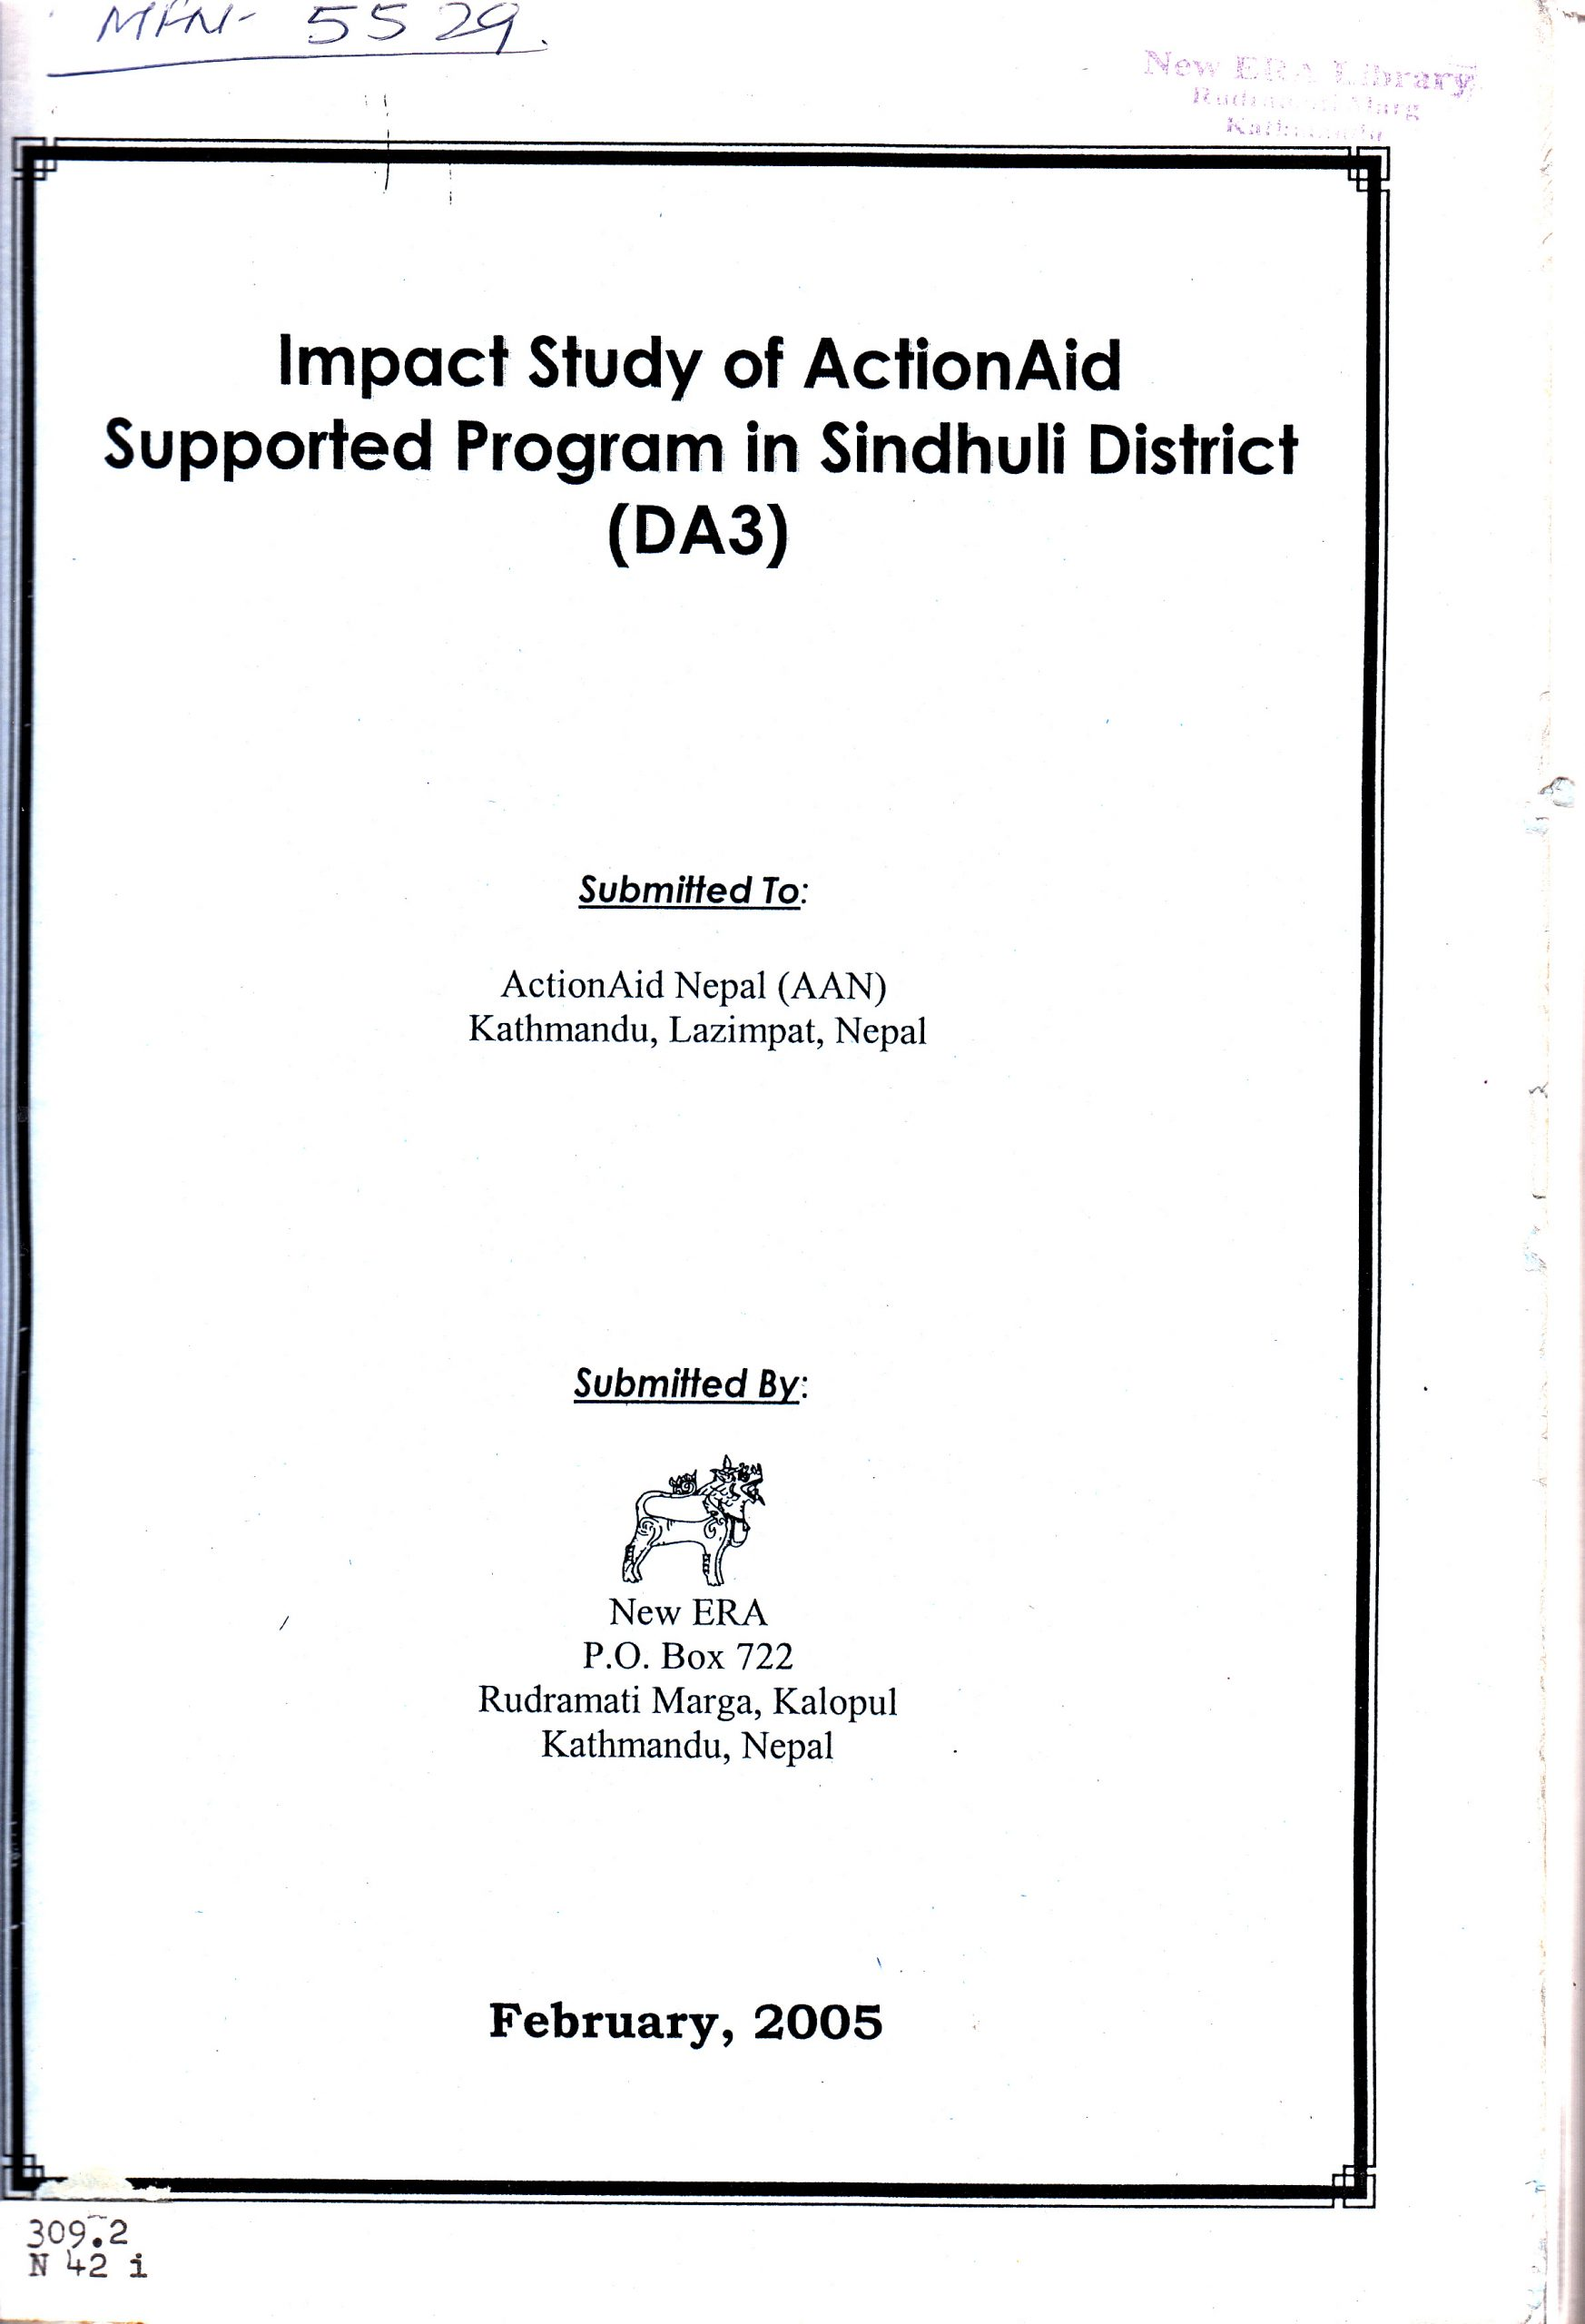 Impact Evaluation Study of ActionAid Nepal Supported Programs in Sindhuli District (DA 3)